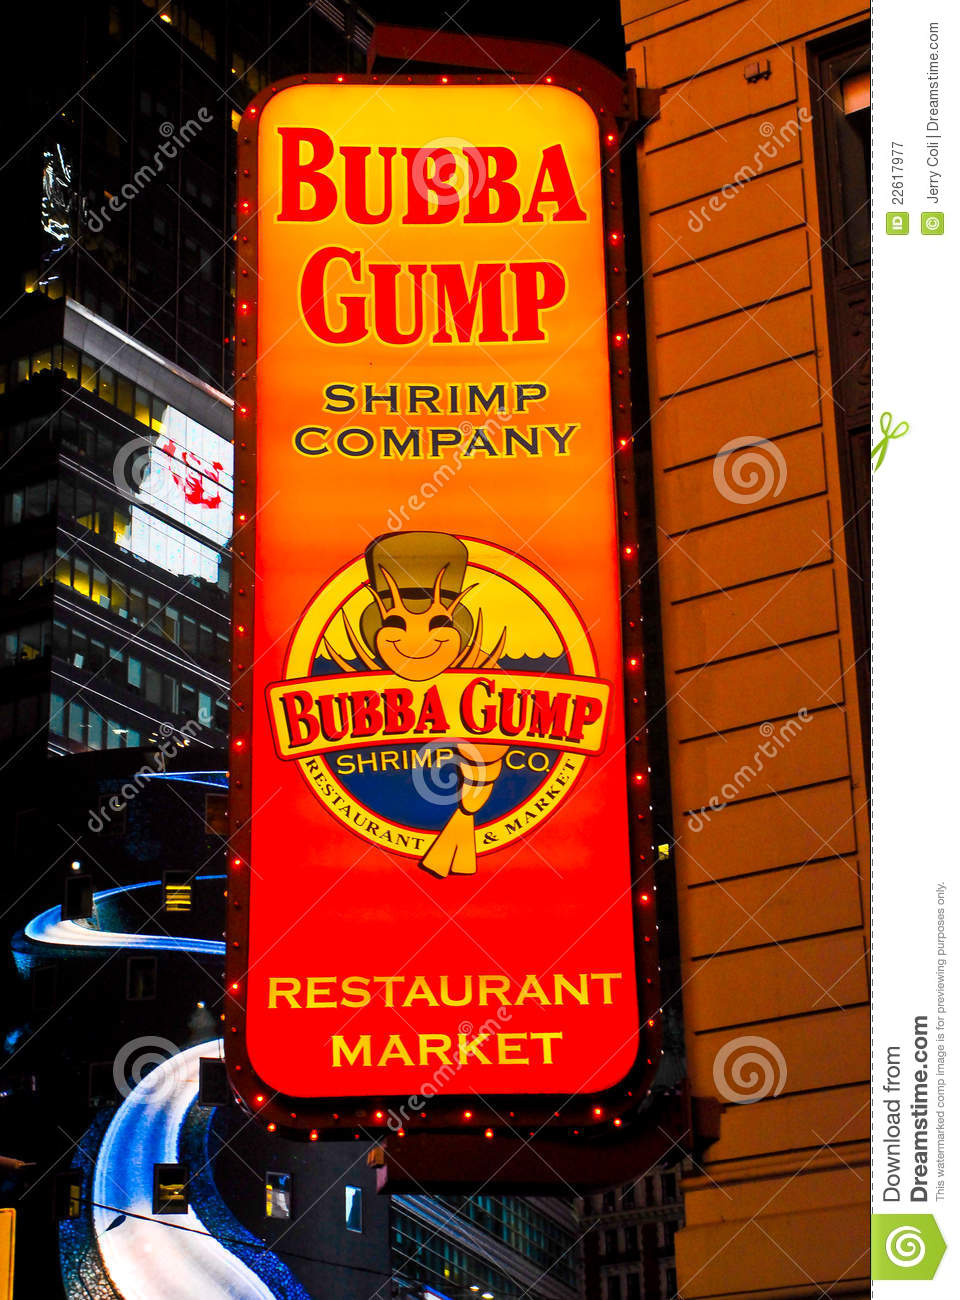 bubba gump shrimp company  times square  nyc editorial photography